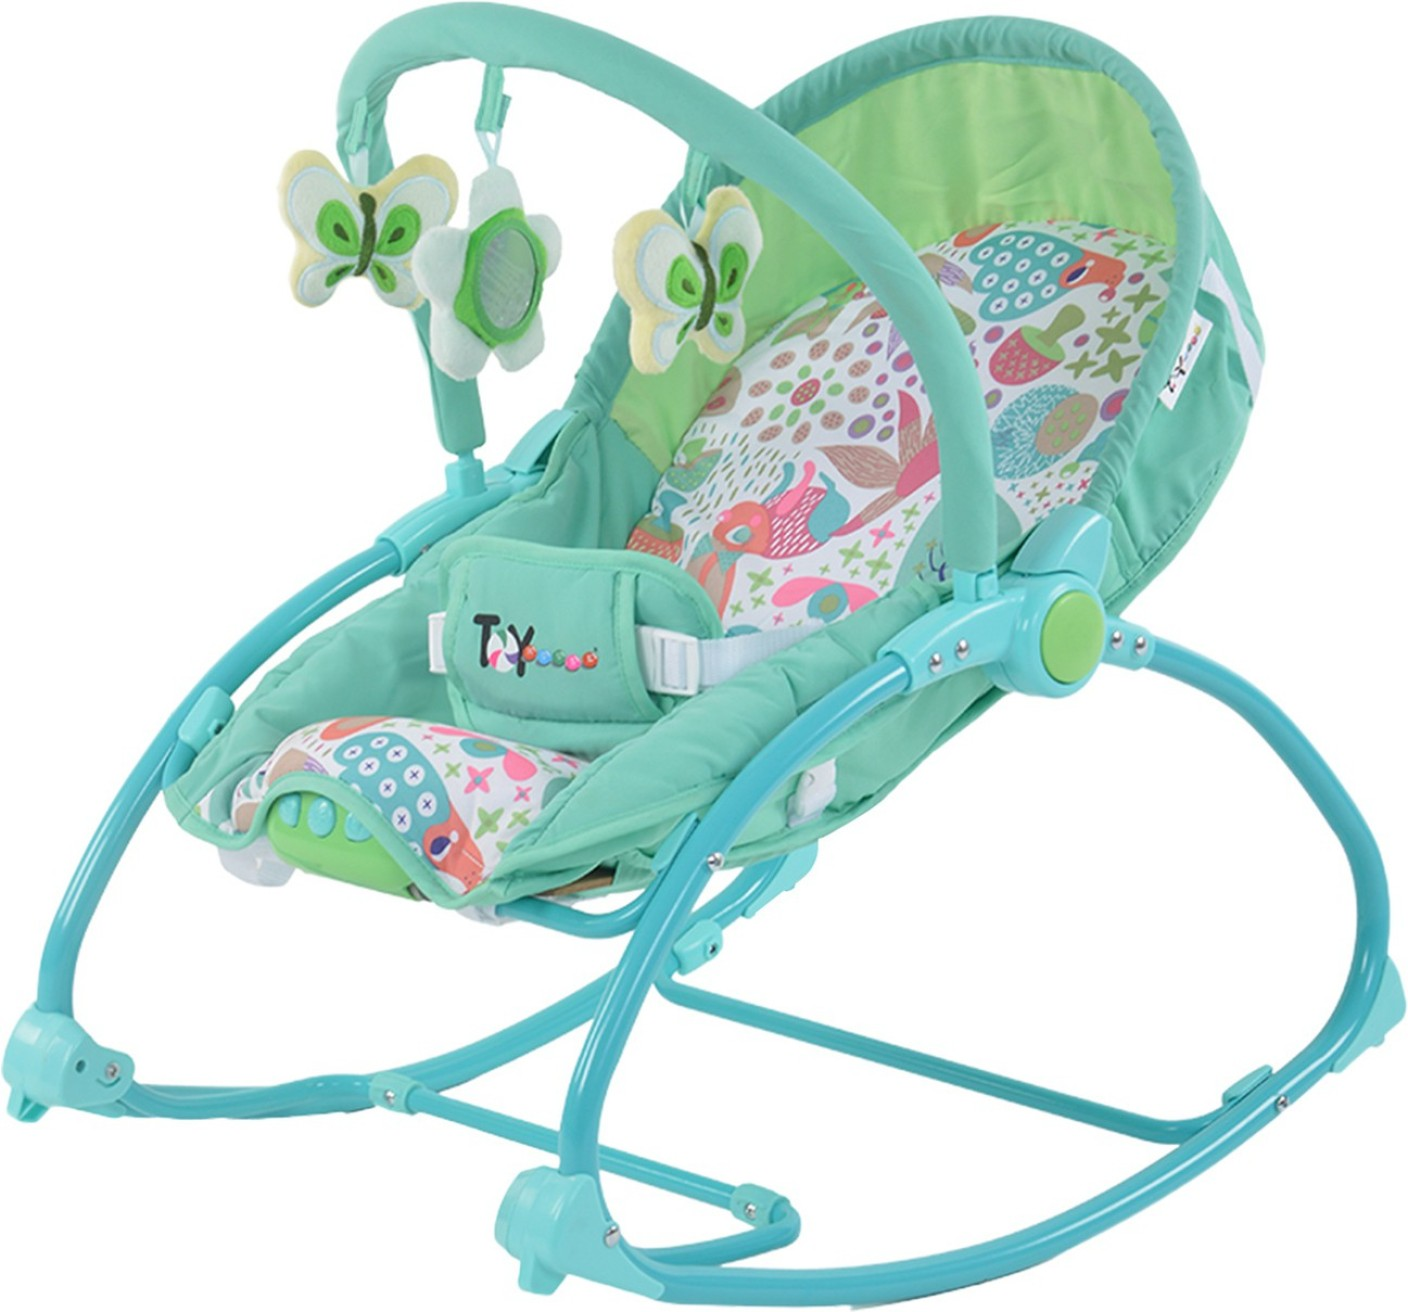 Electric baby rocker chair - Share